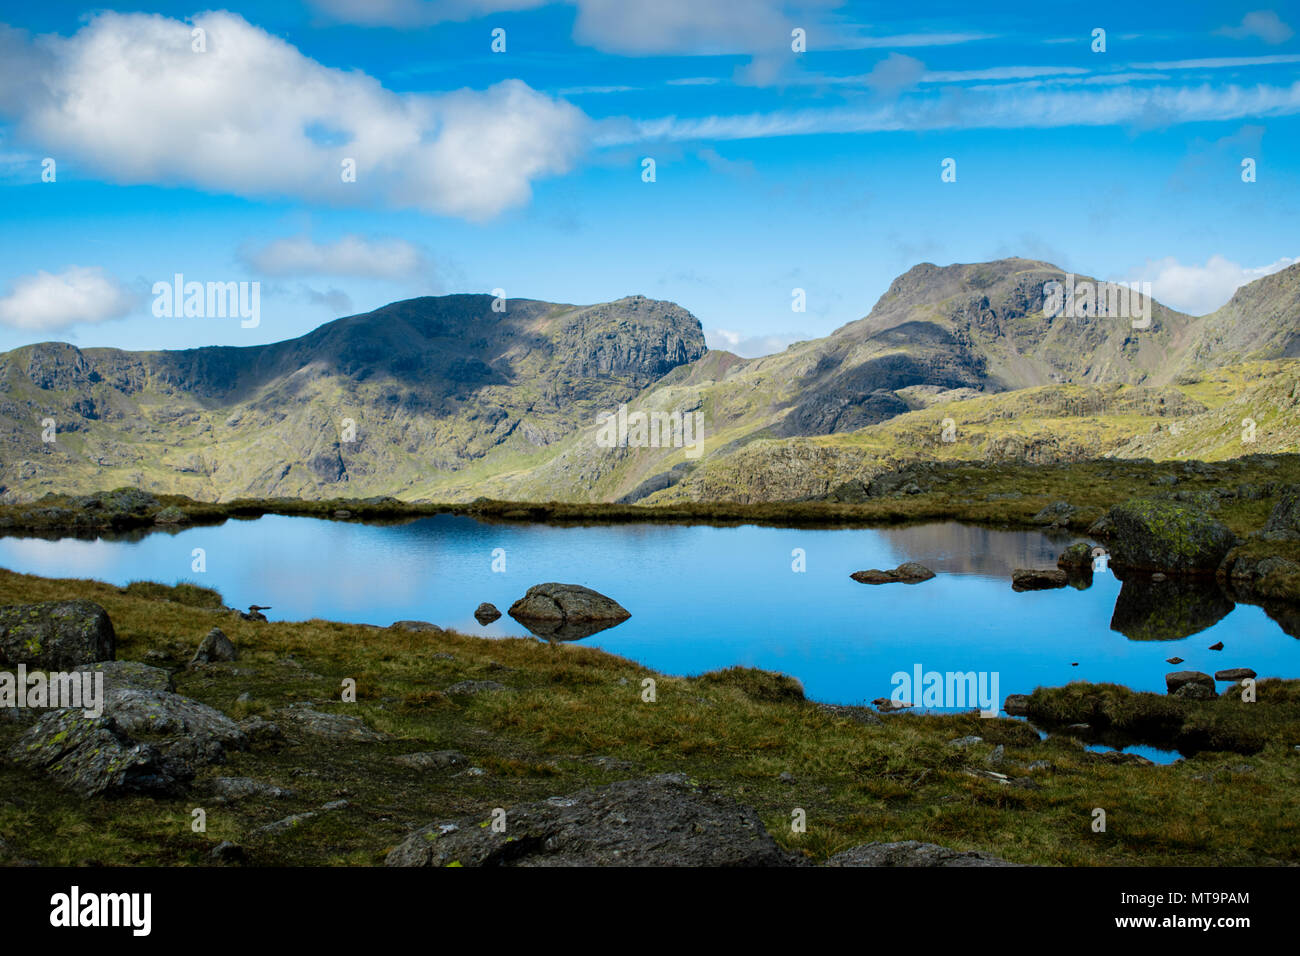 View of Scafell Pike from the South East with the mountain reflected in a nearby body of water under a cloudy sky. Scafell Pike is to the right. - Stock Image